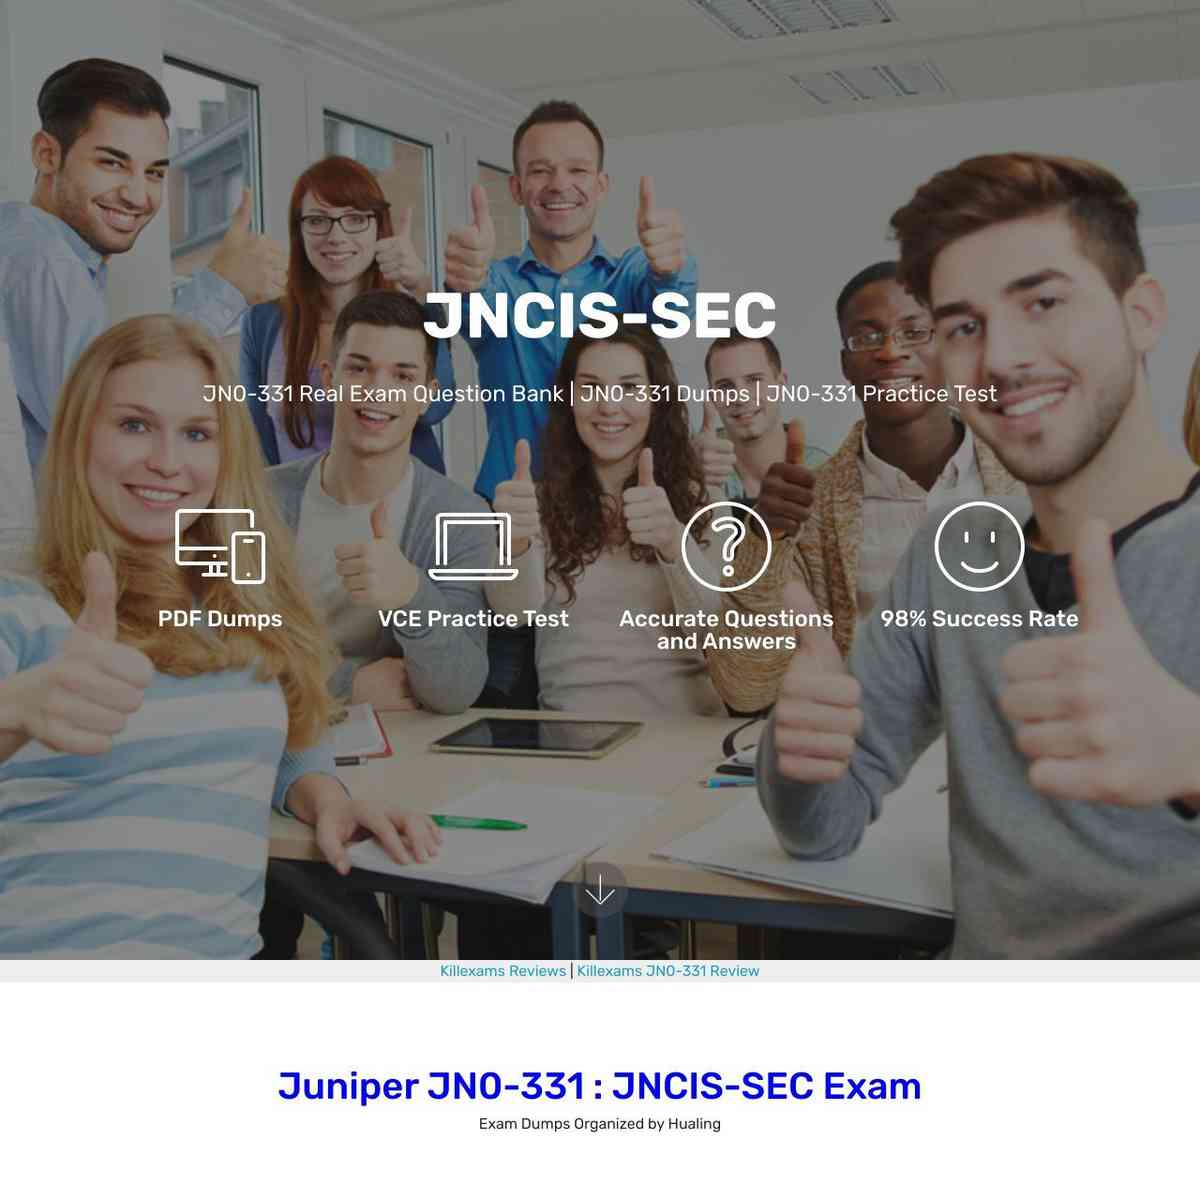 New release of JN0-331 Exam dumps with Real Exam Questions